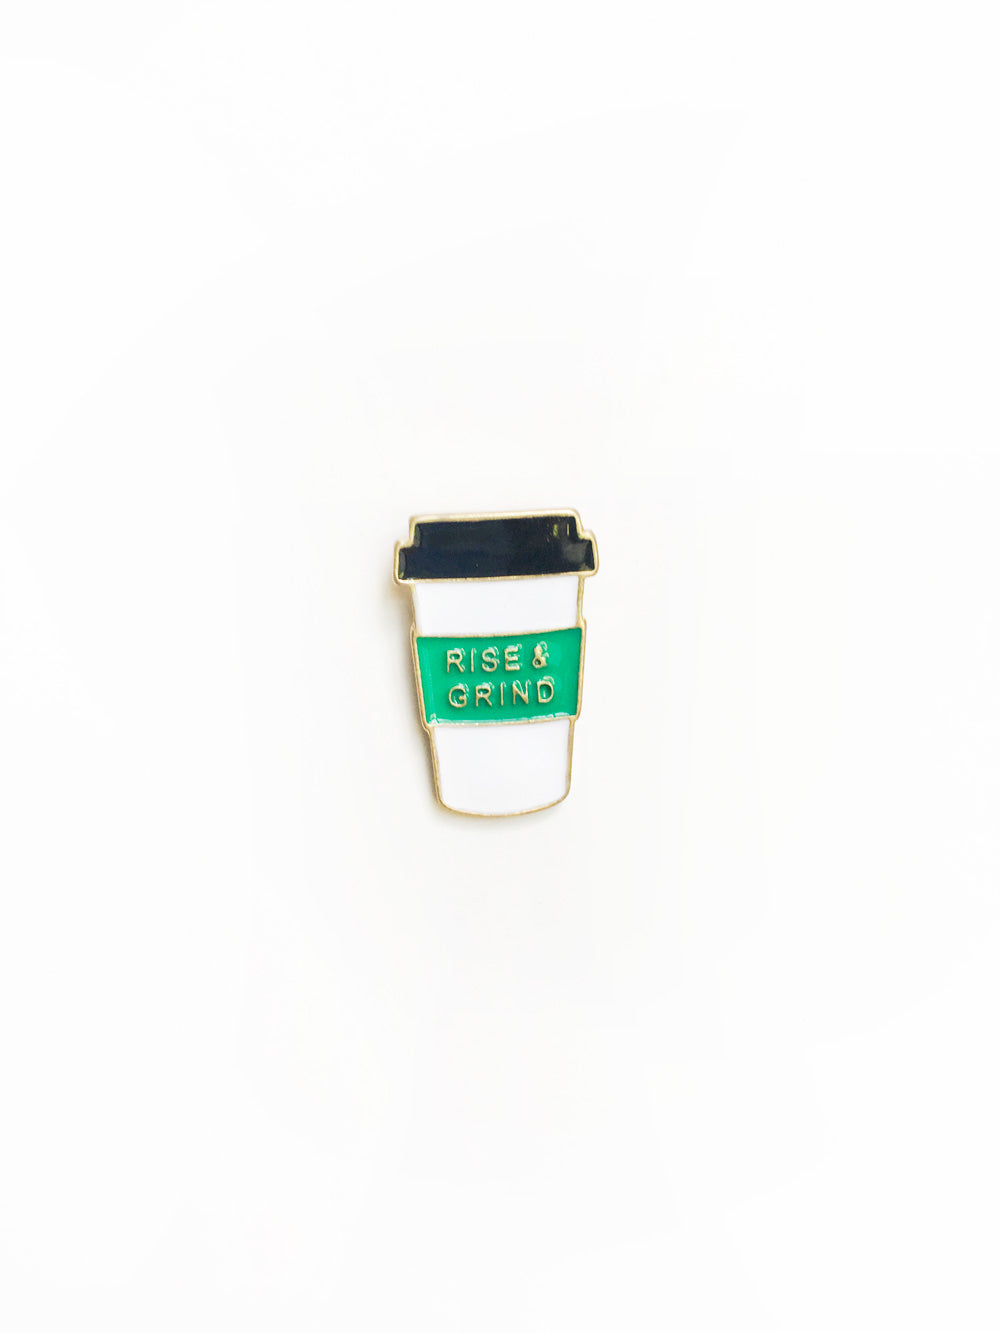 Rise and Grind Enamel Pin